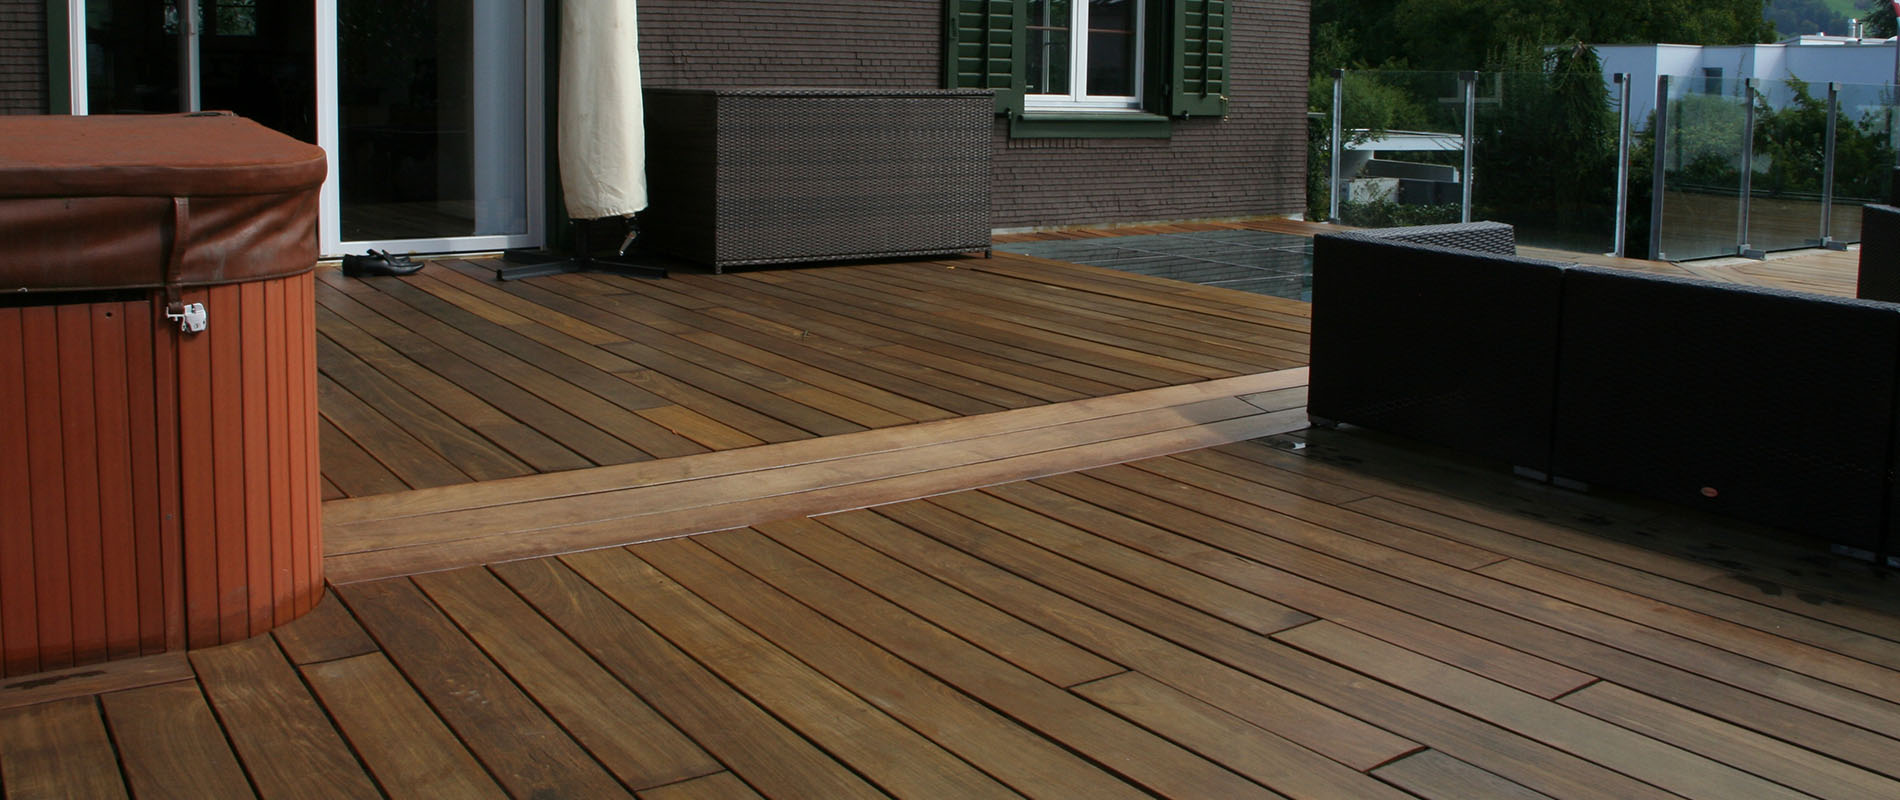 Ipe is the Superior Decking Solution for Switzerland Chalet With Jaw Dropping Backdrop